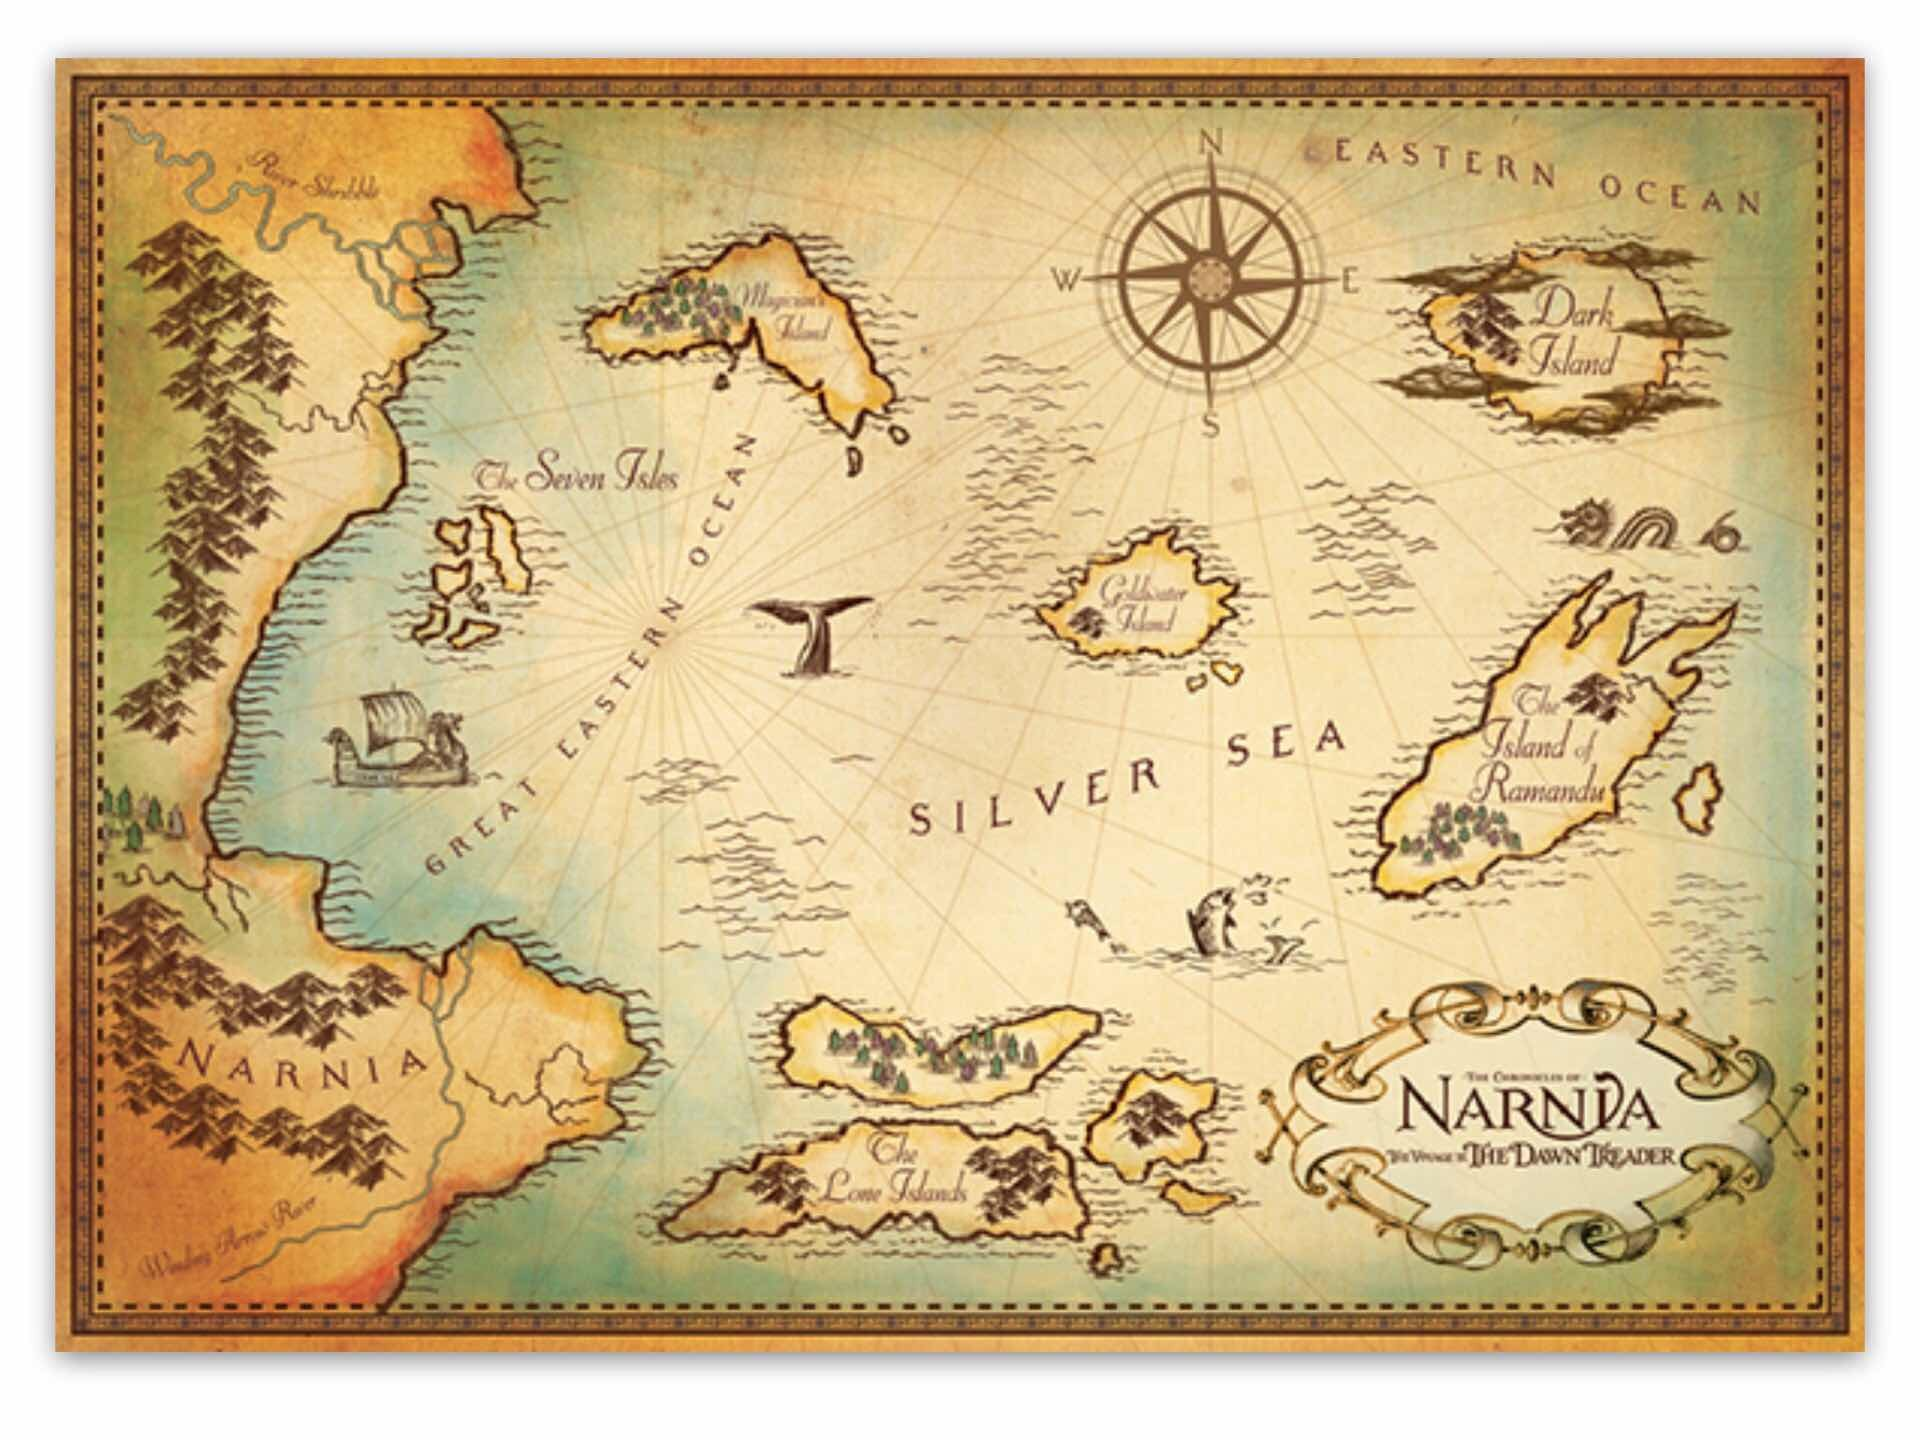 maps-of-fictional-worlds-guide-chronicles-of-narnia-voyage-of-the-dawn-treader